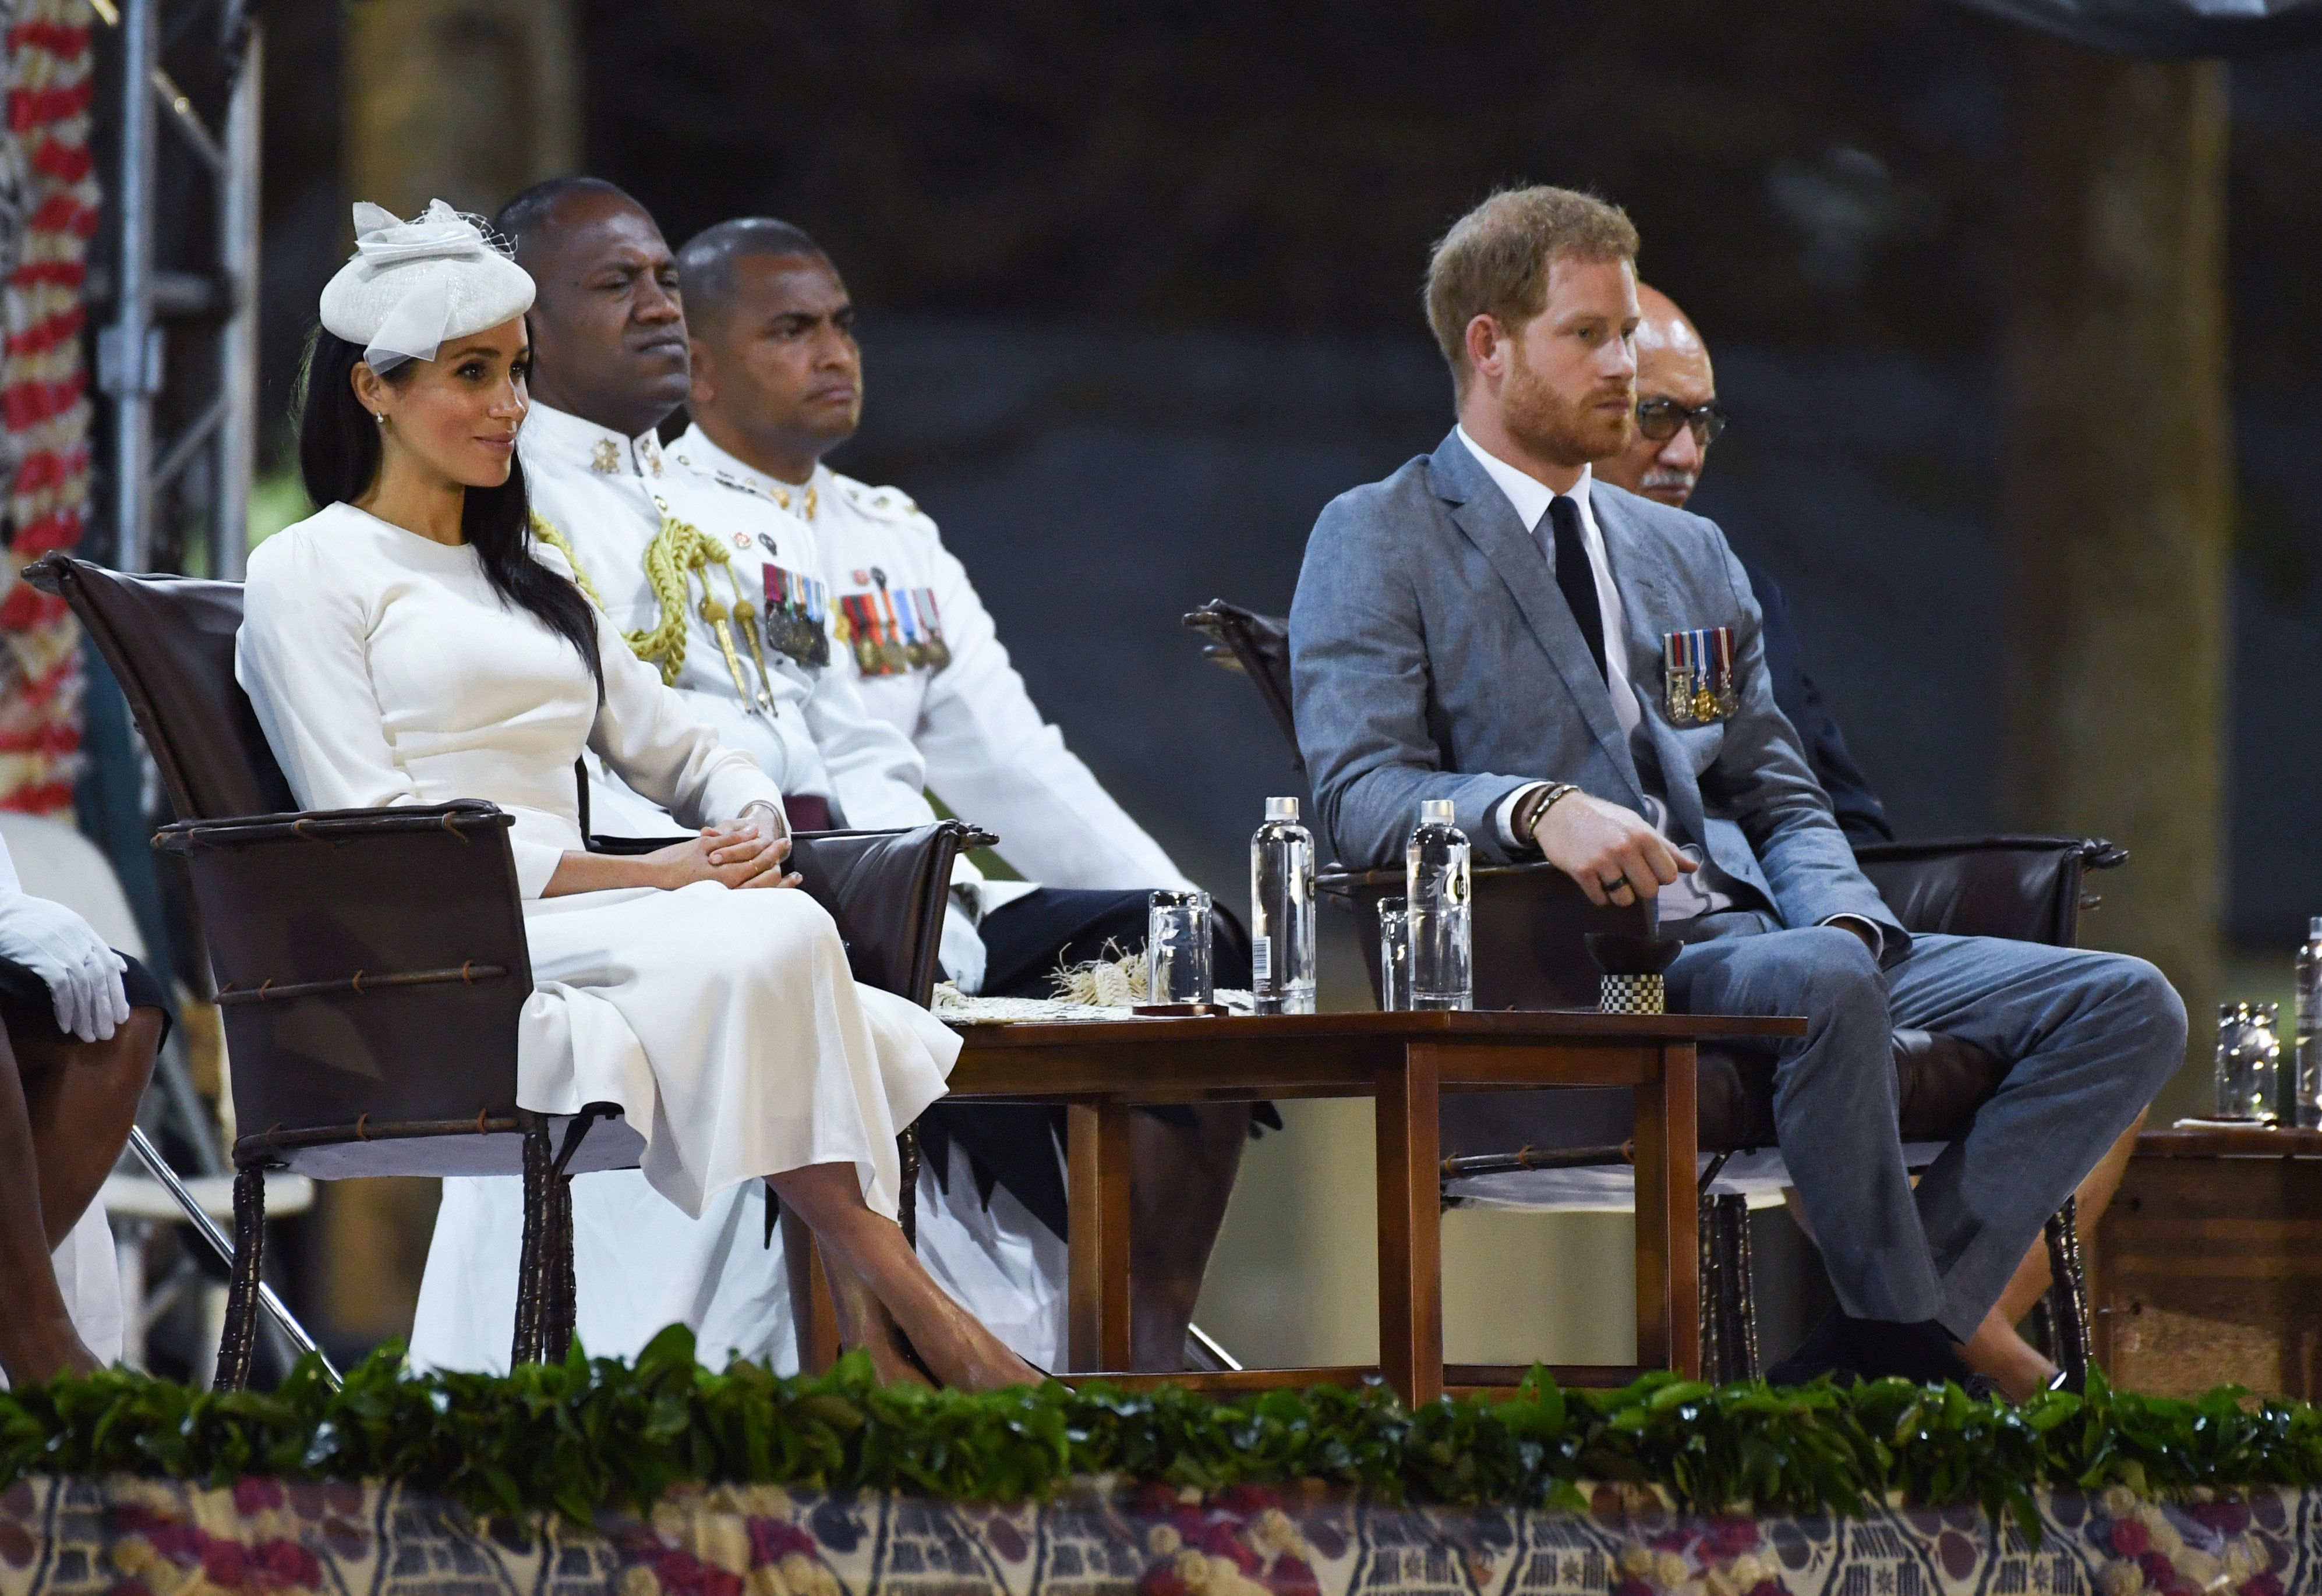 The Duke and Duchess of Sussex arrive in Suva, Fiji, where they took part in a ceremony known as the Veirqaraqaravi Vakavanua